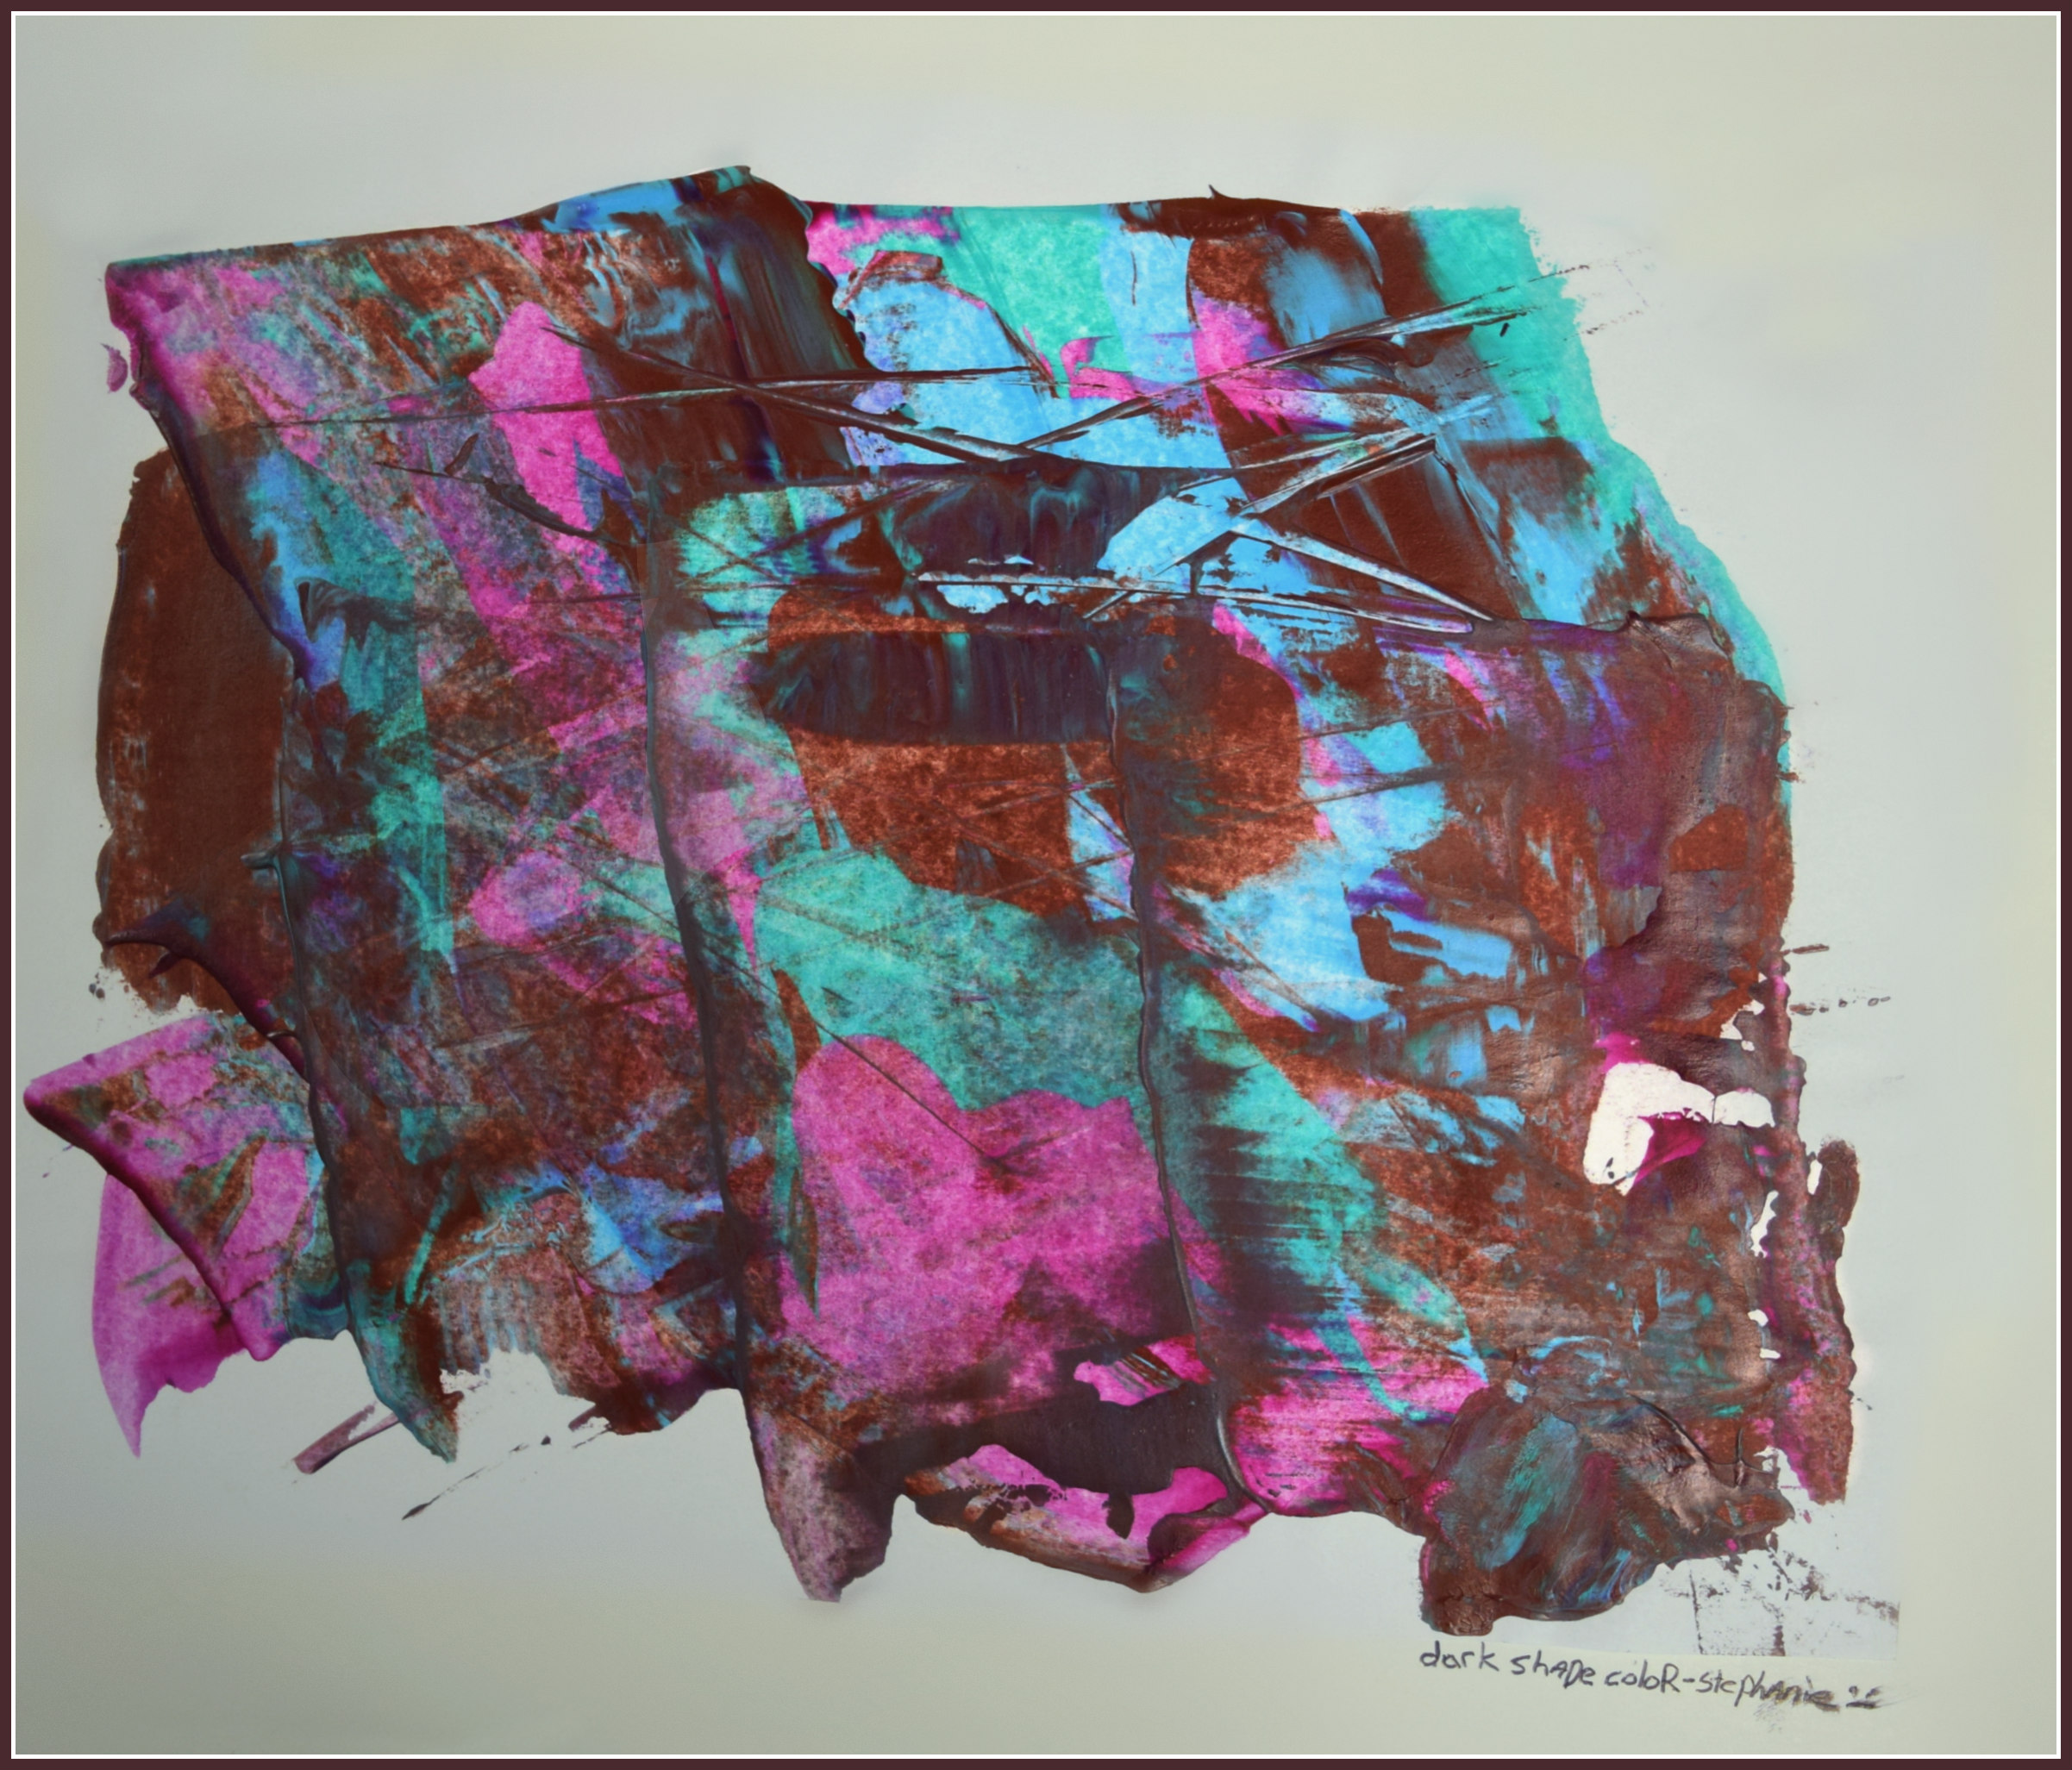 """Dark Shape  Stephanie Bedell   Acrylic on paper with scraping tool   Print on 11x17"""" photo paper $30"""